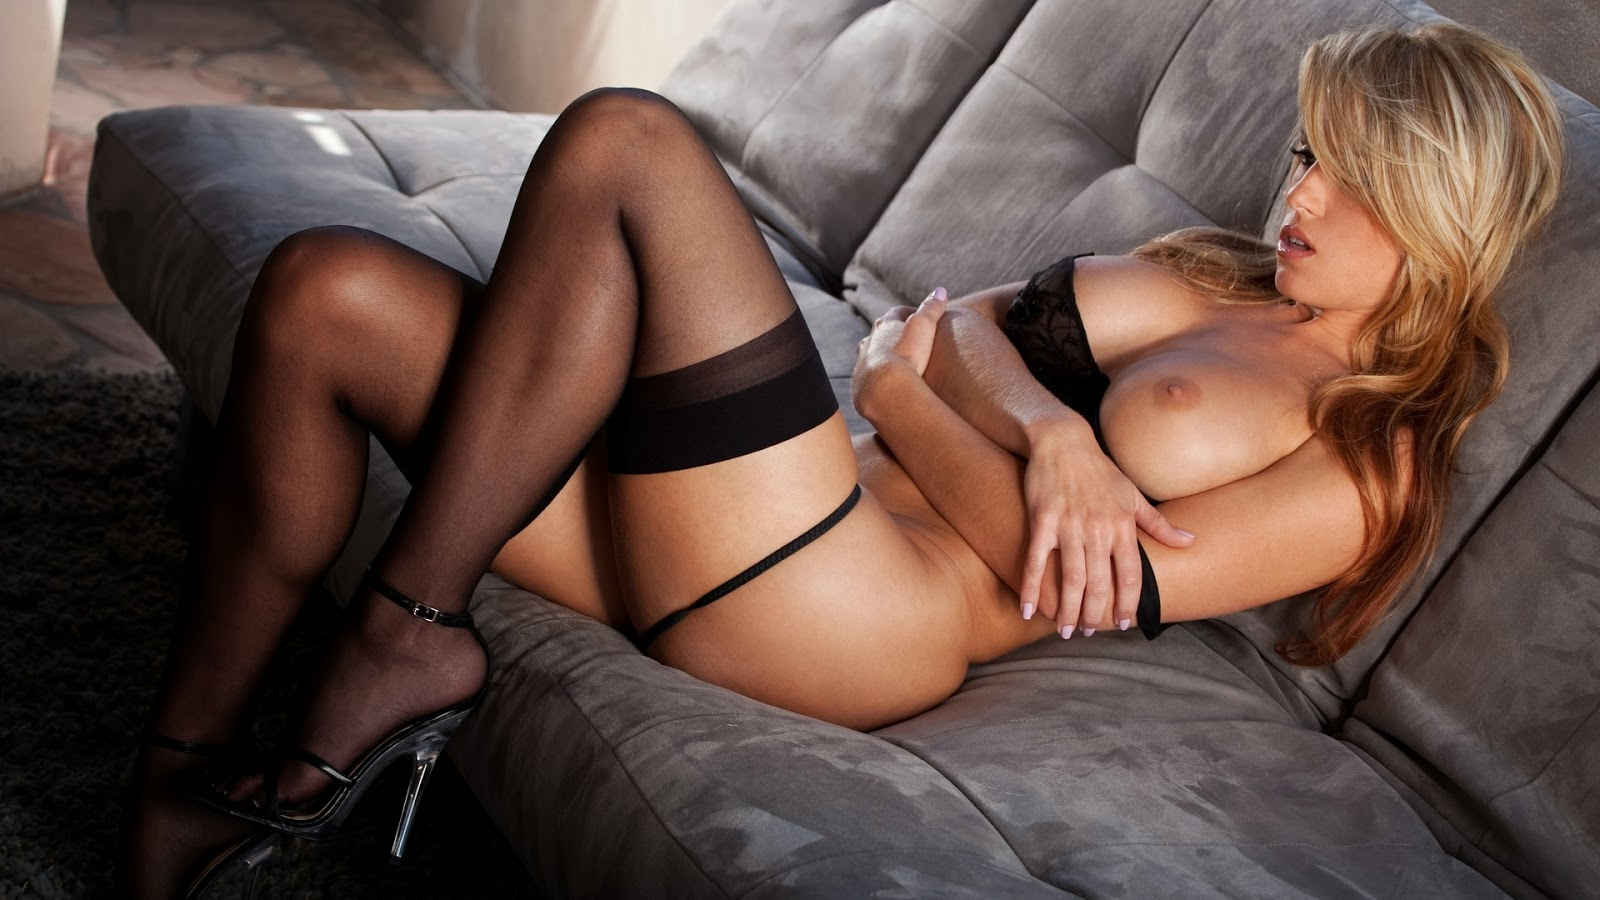 Randy Moore Black Stockings Sexy Diva Wallpaper